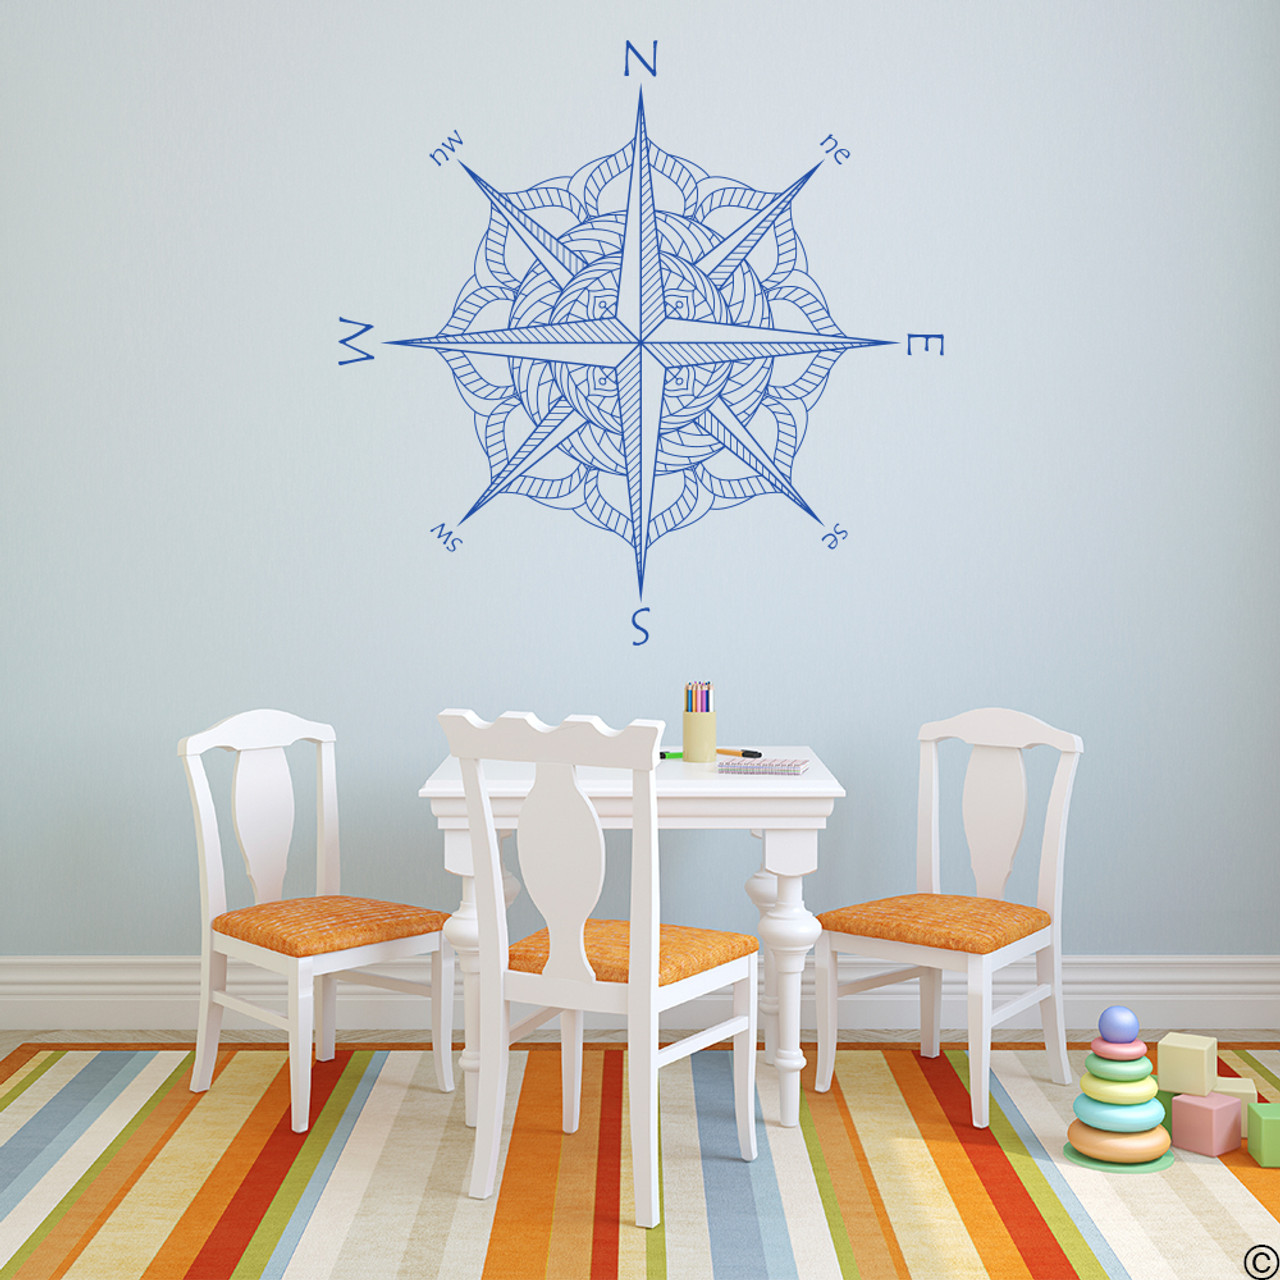 The Catalina compass rose wall or ceiling decal in traffic blue